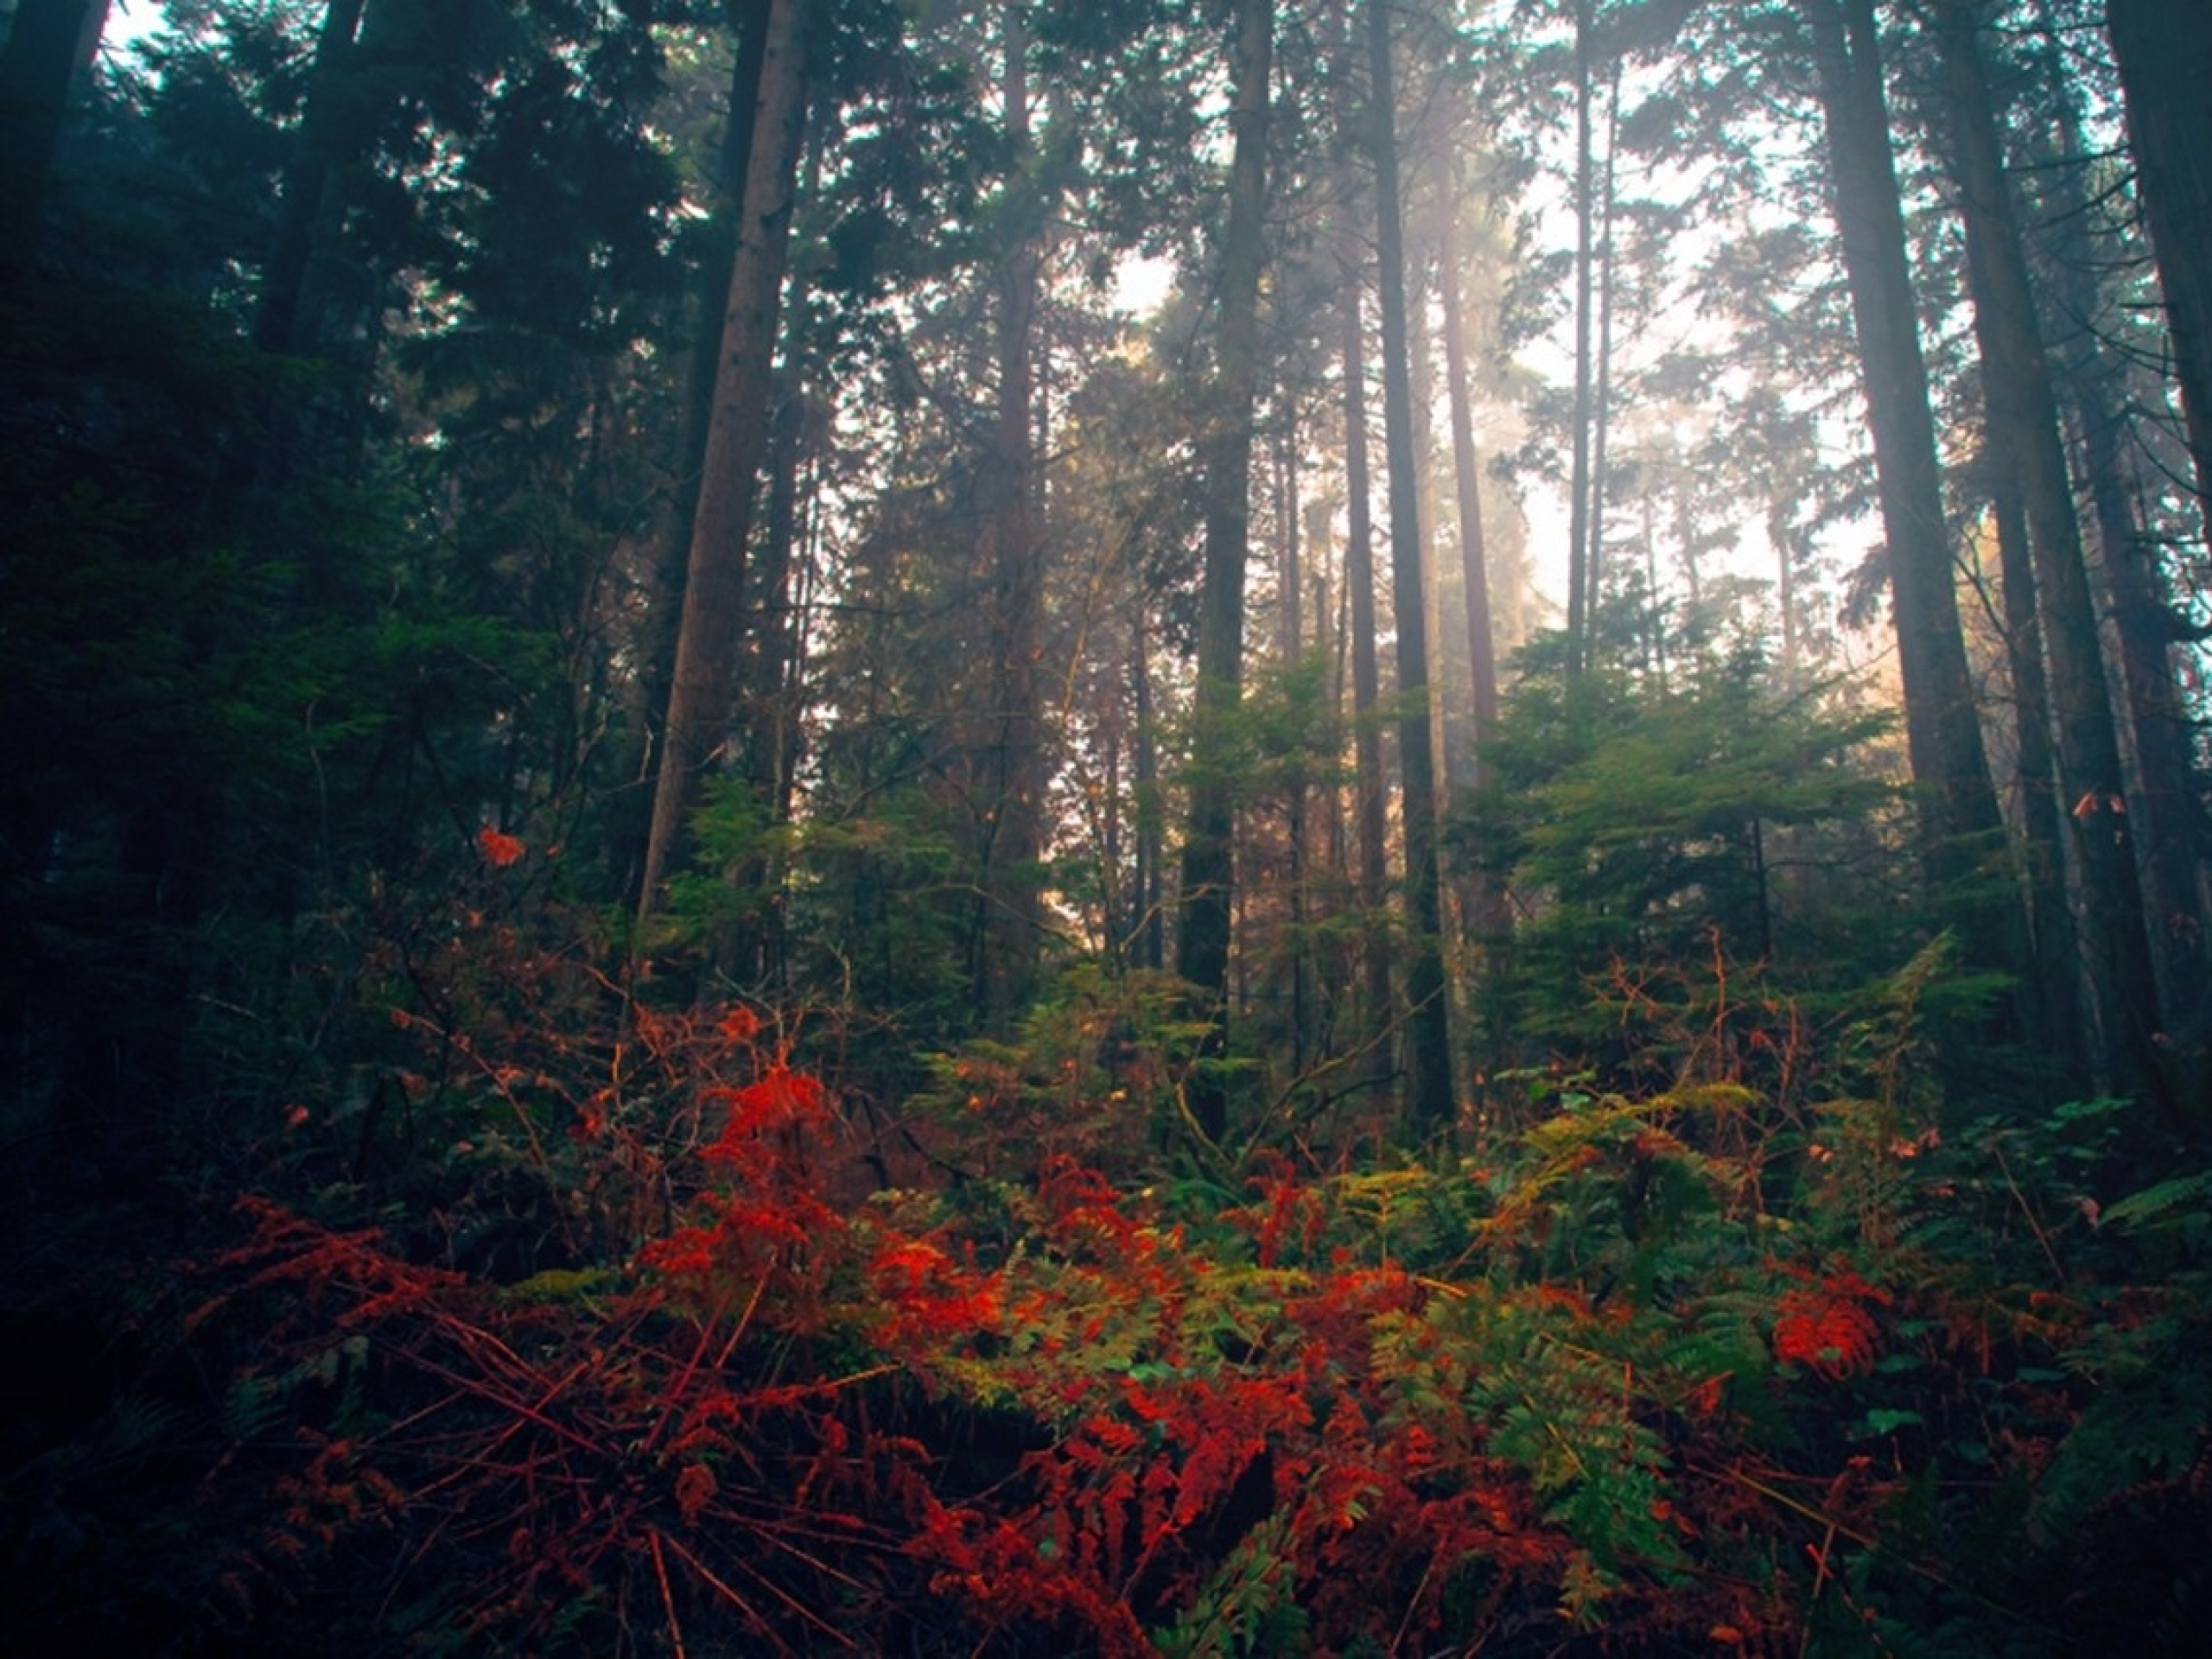 Lumia Wallpaper 3d Forest Trees Amp Red Flowers Wallpapers Forest Trees Amp Red